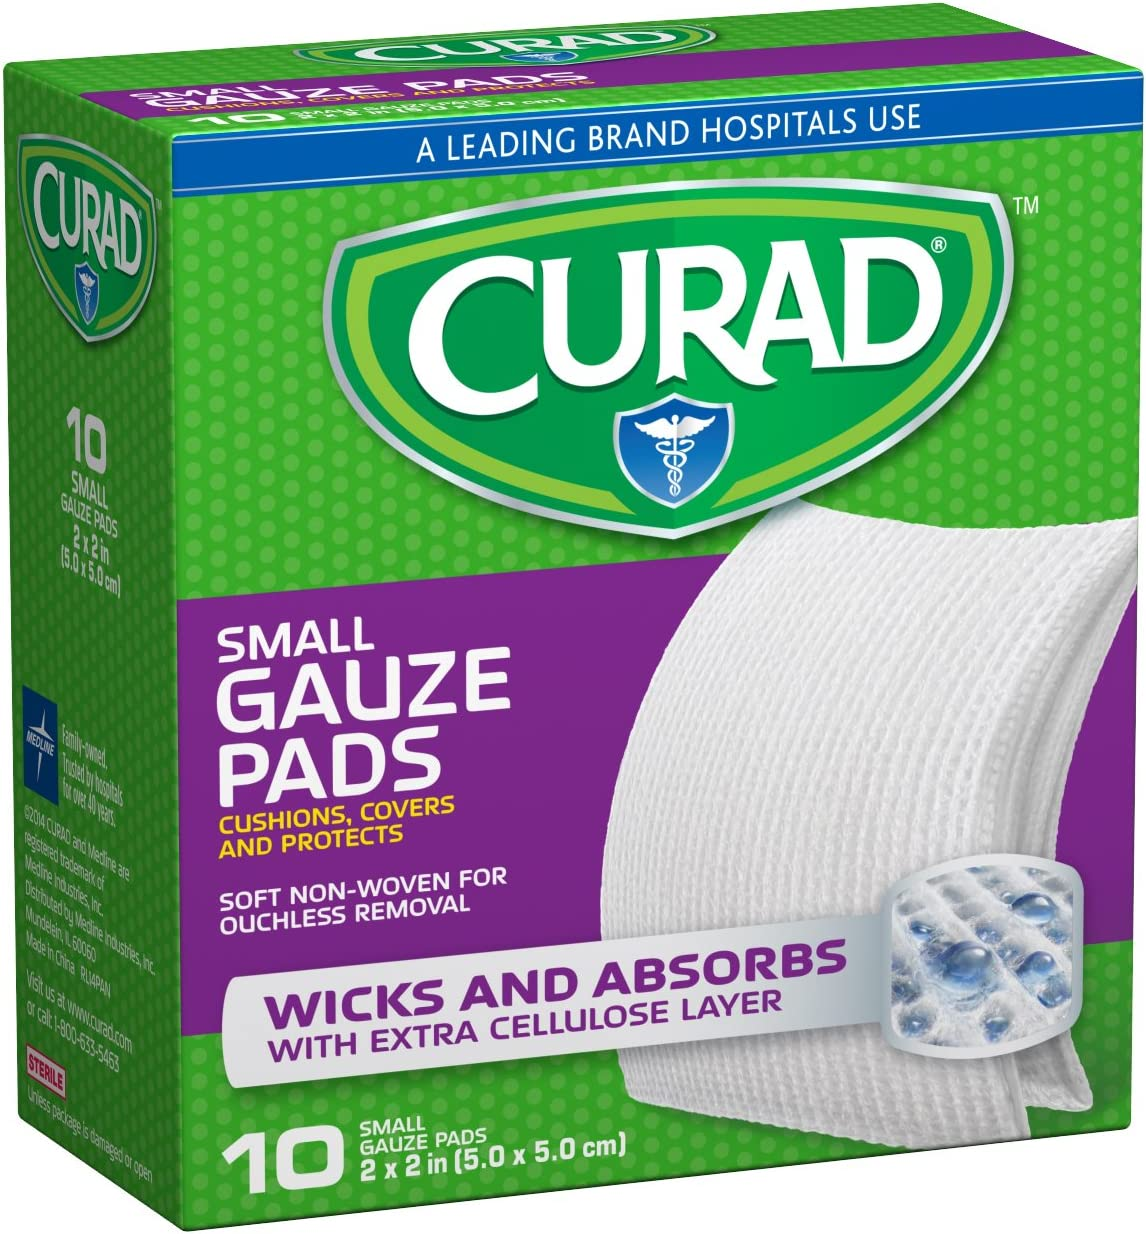 Curad Non-Woven Pro-Gauze 2 Inch x 6 Count of High Indianapolis Mall order 10 Pack